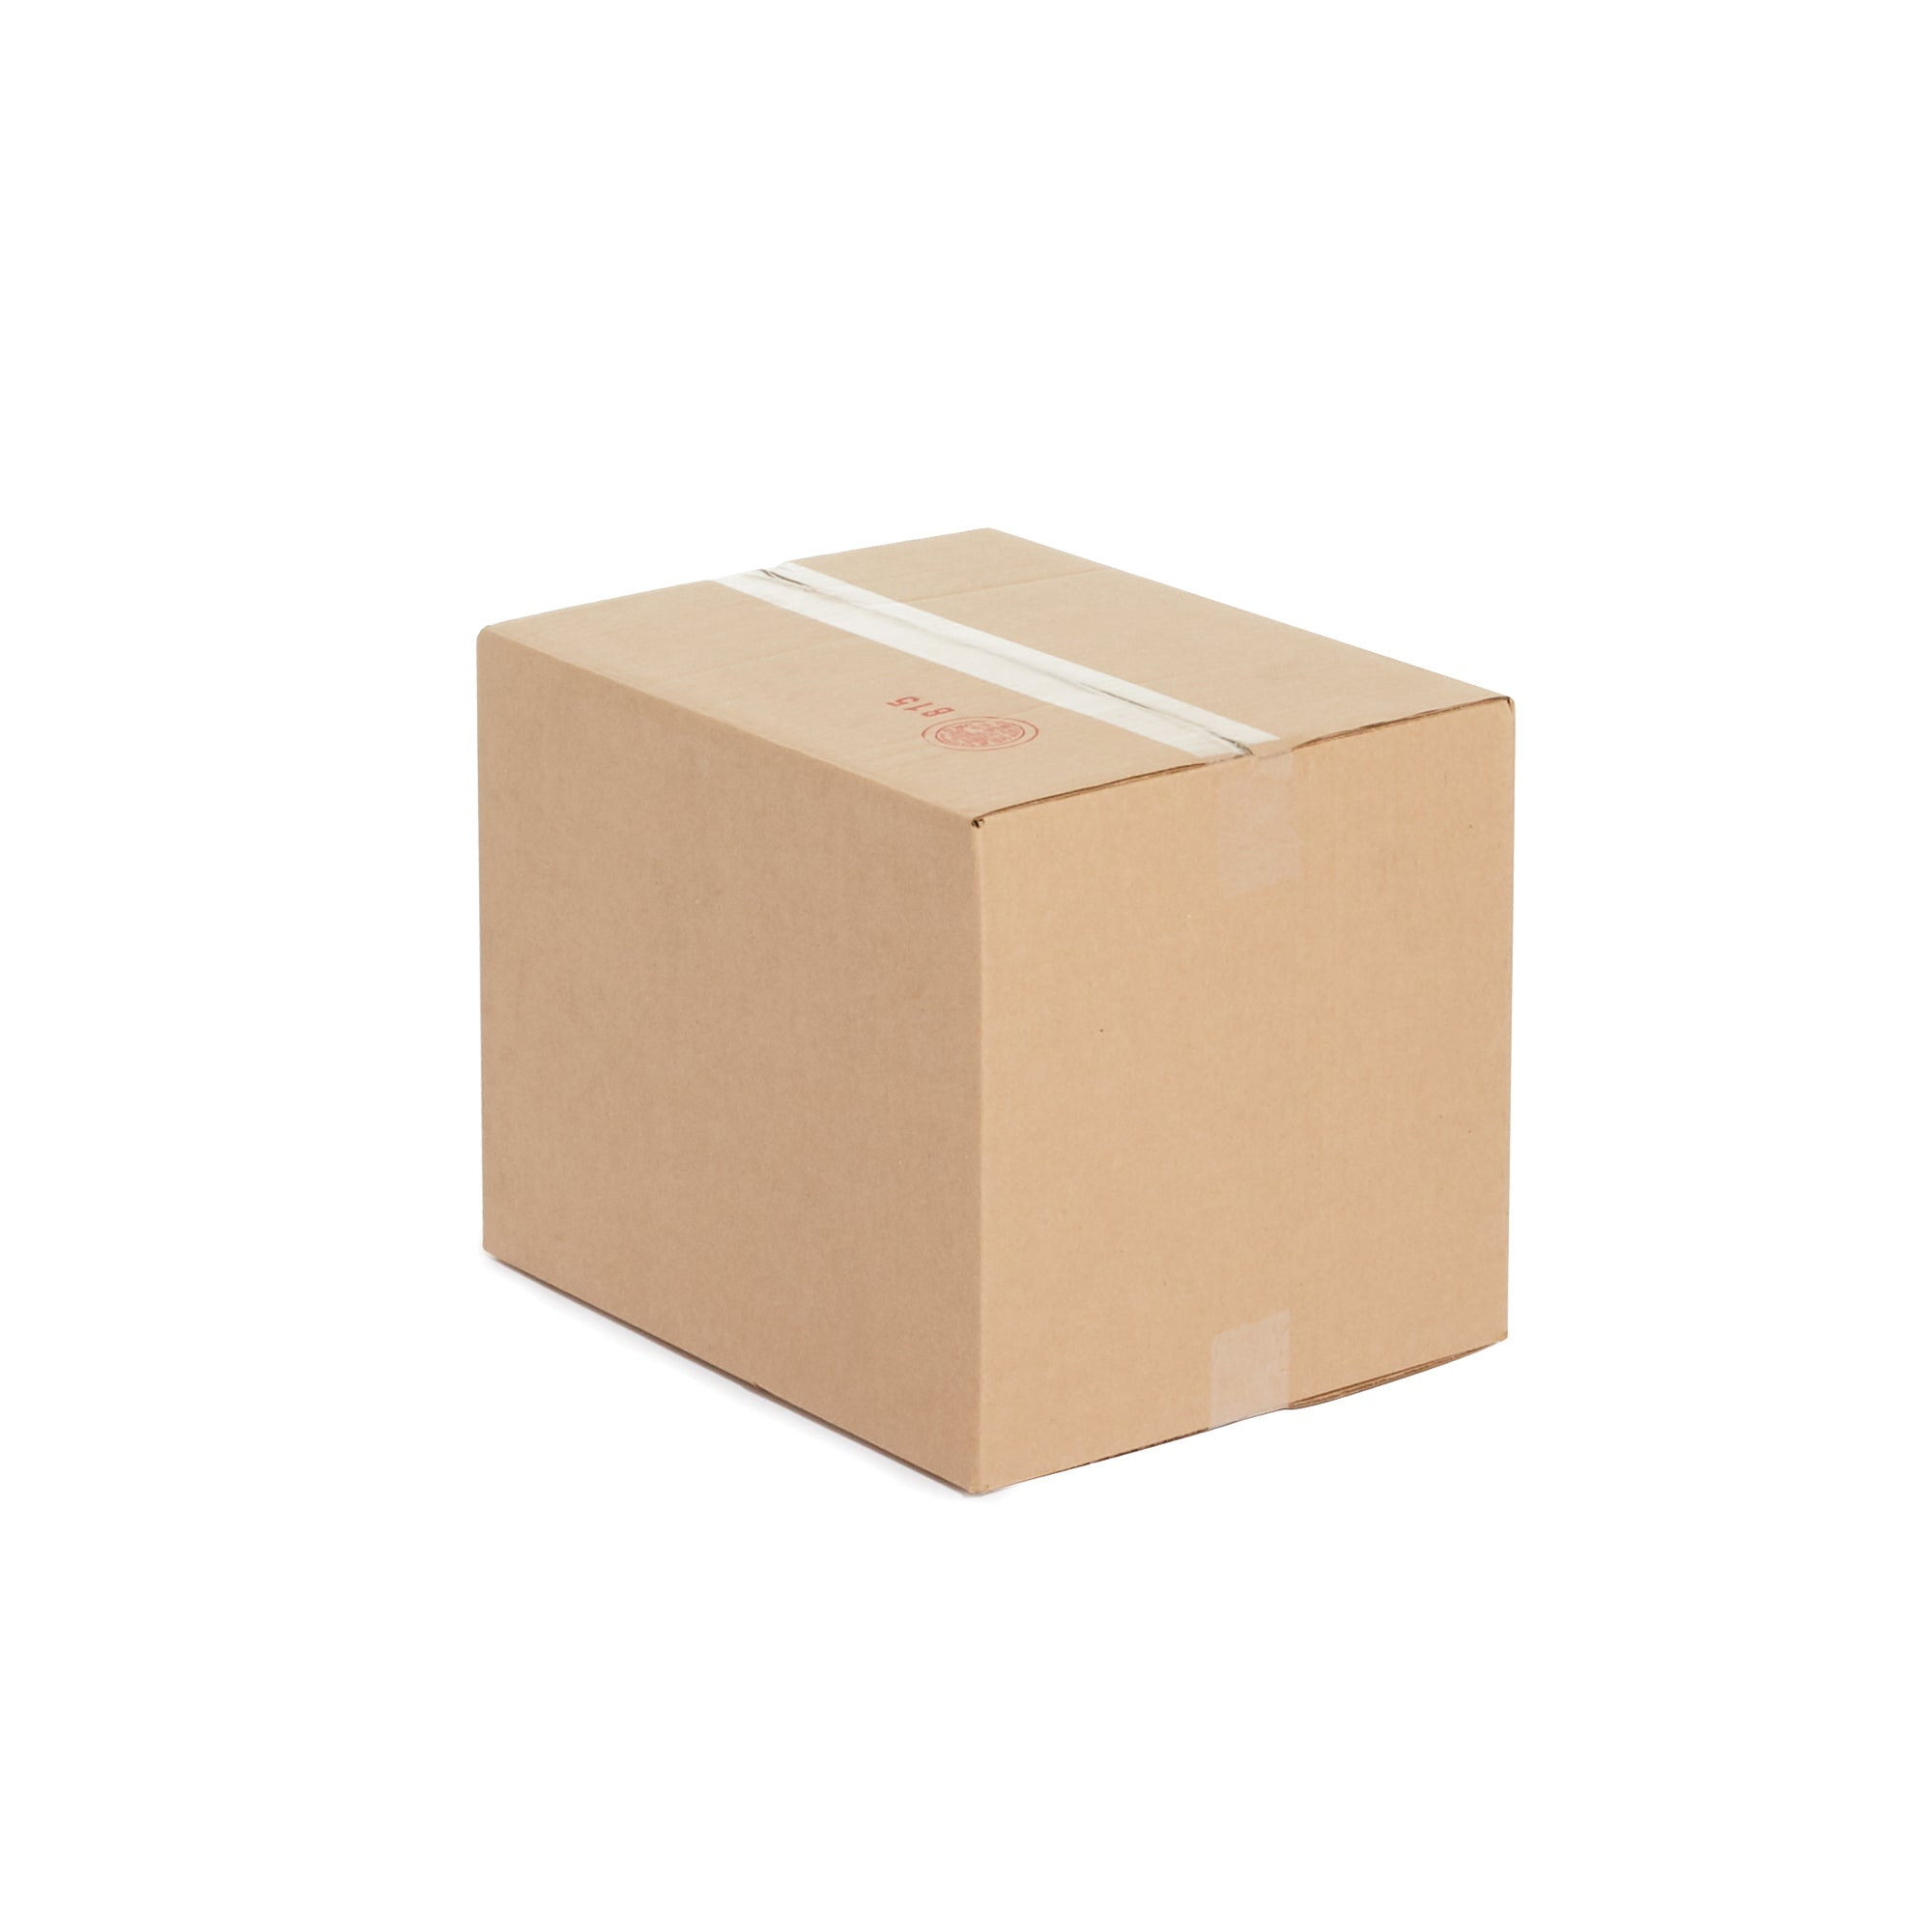 Small Moving Box Packing R Us Moving Packing Shipping Storing Boxes